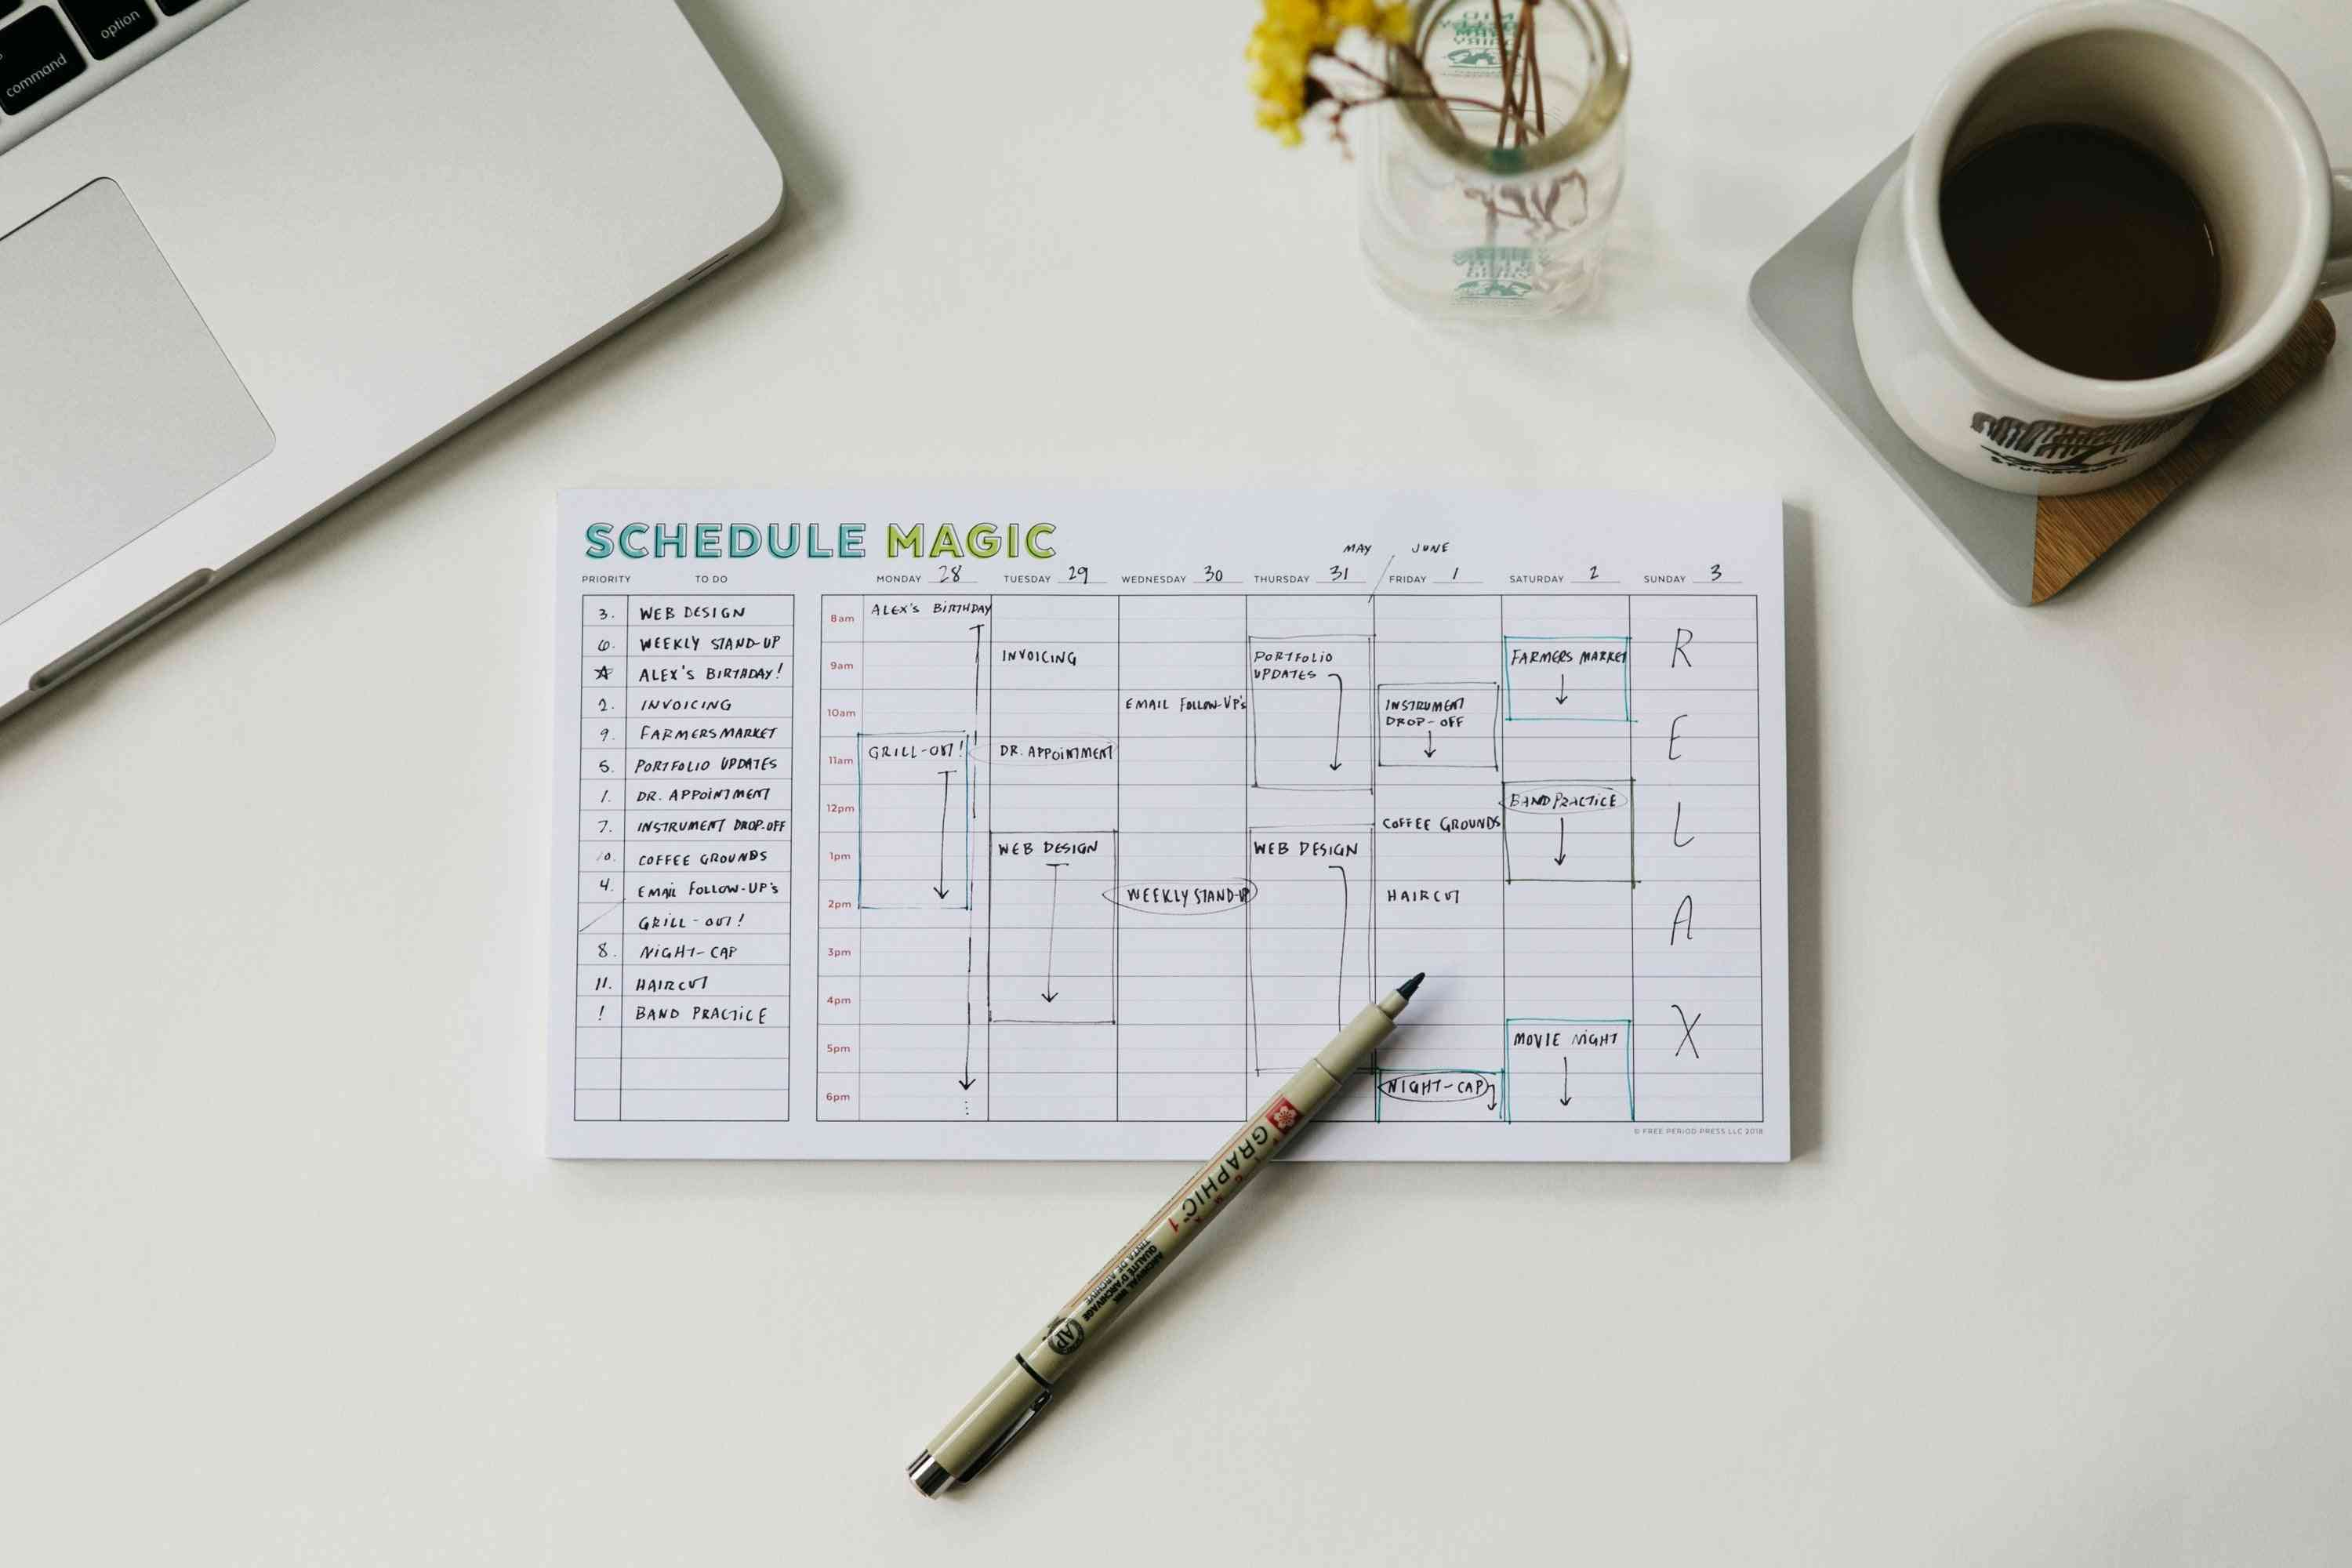 Weekly Schedule Magic To-do List - Notepad